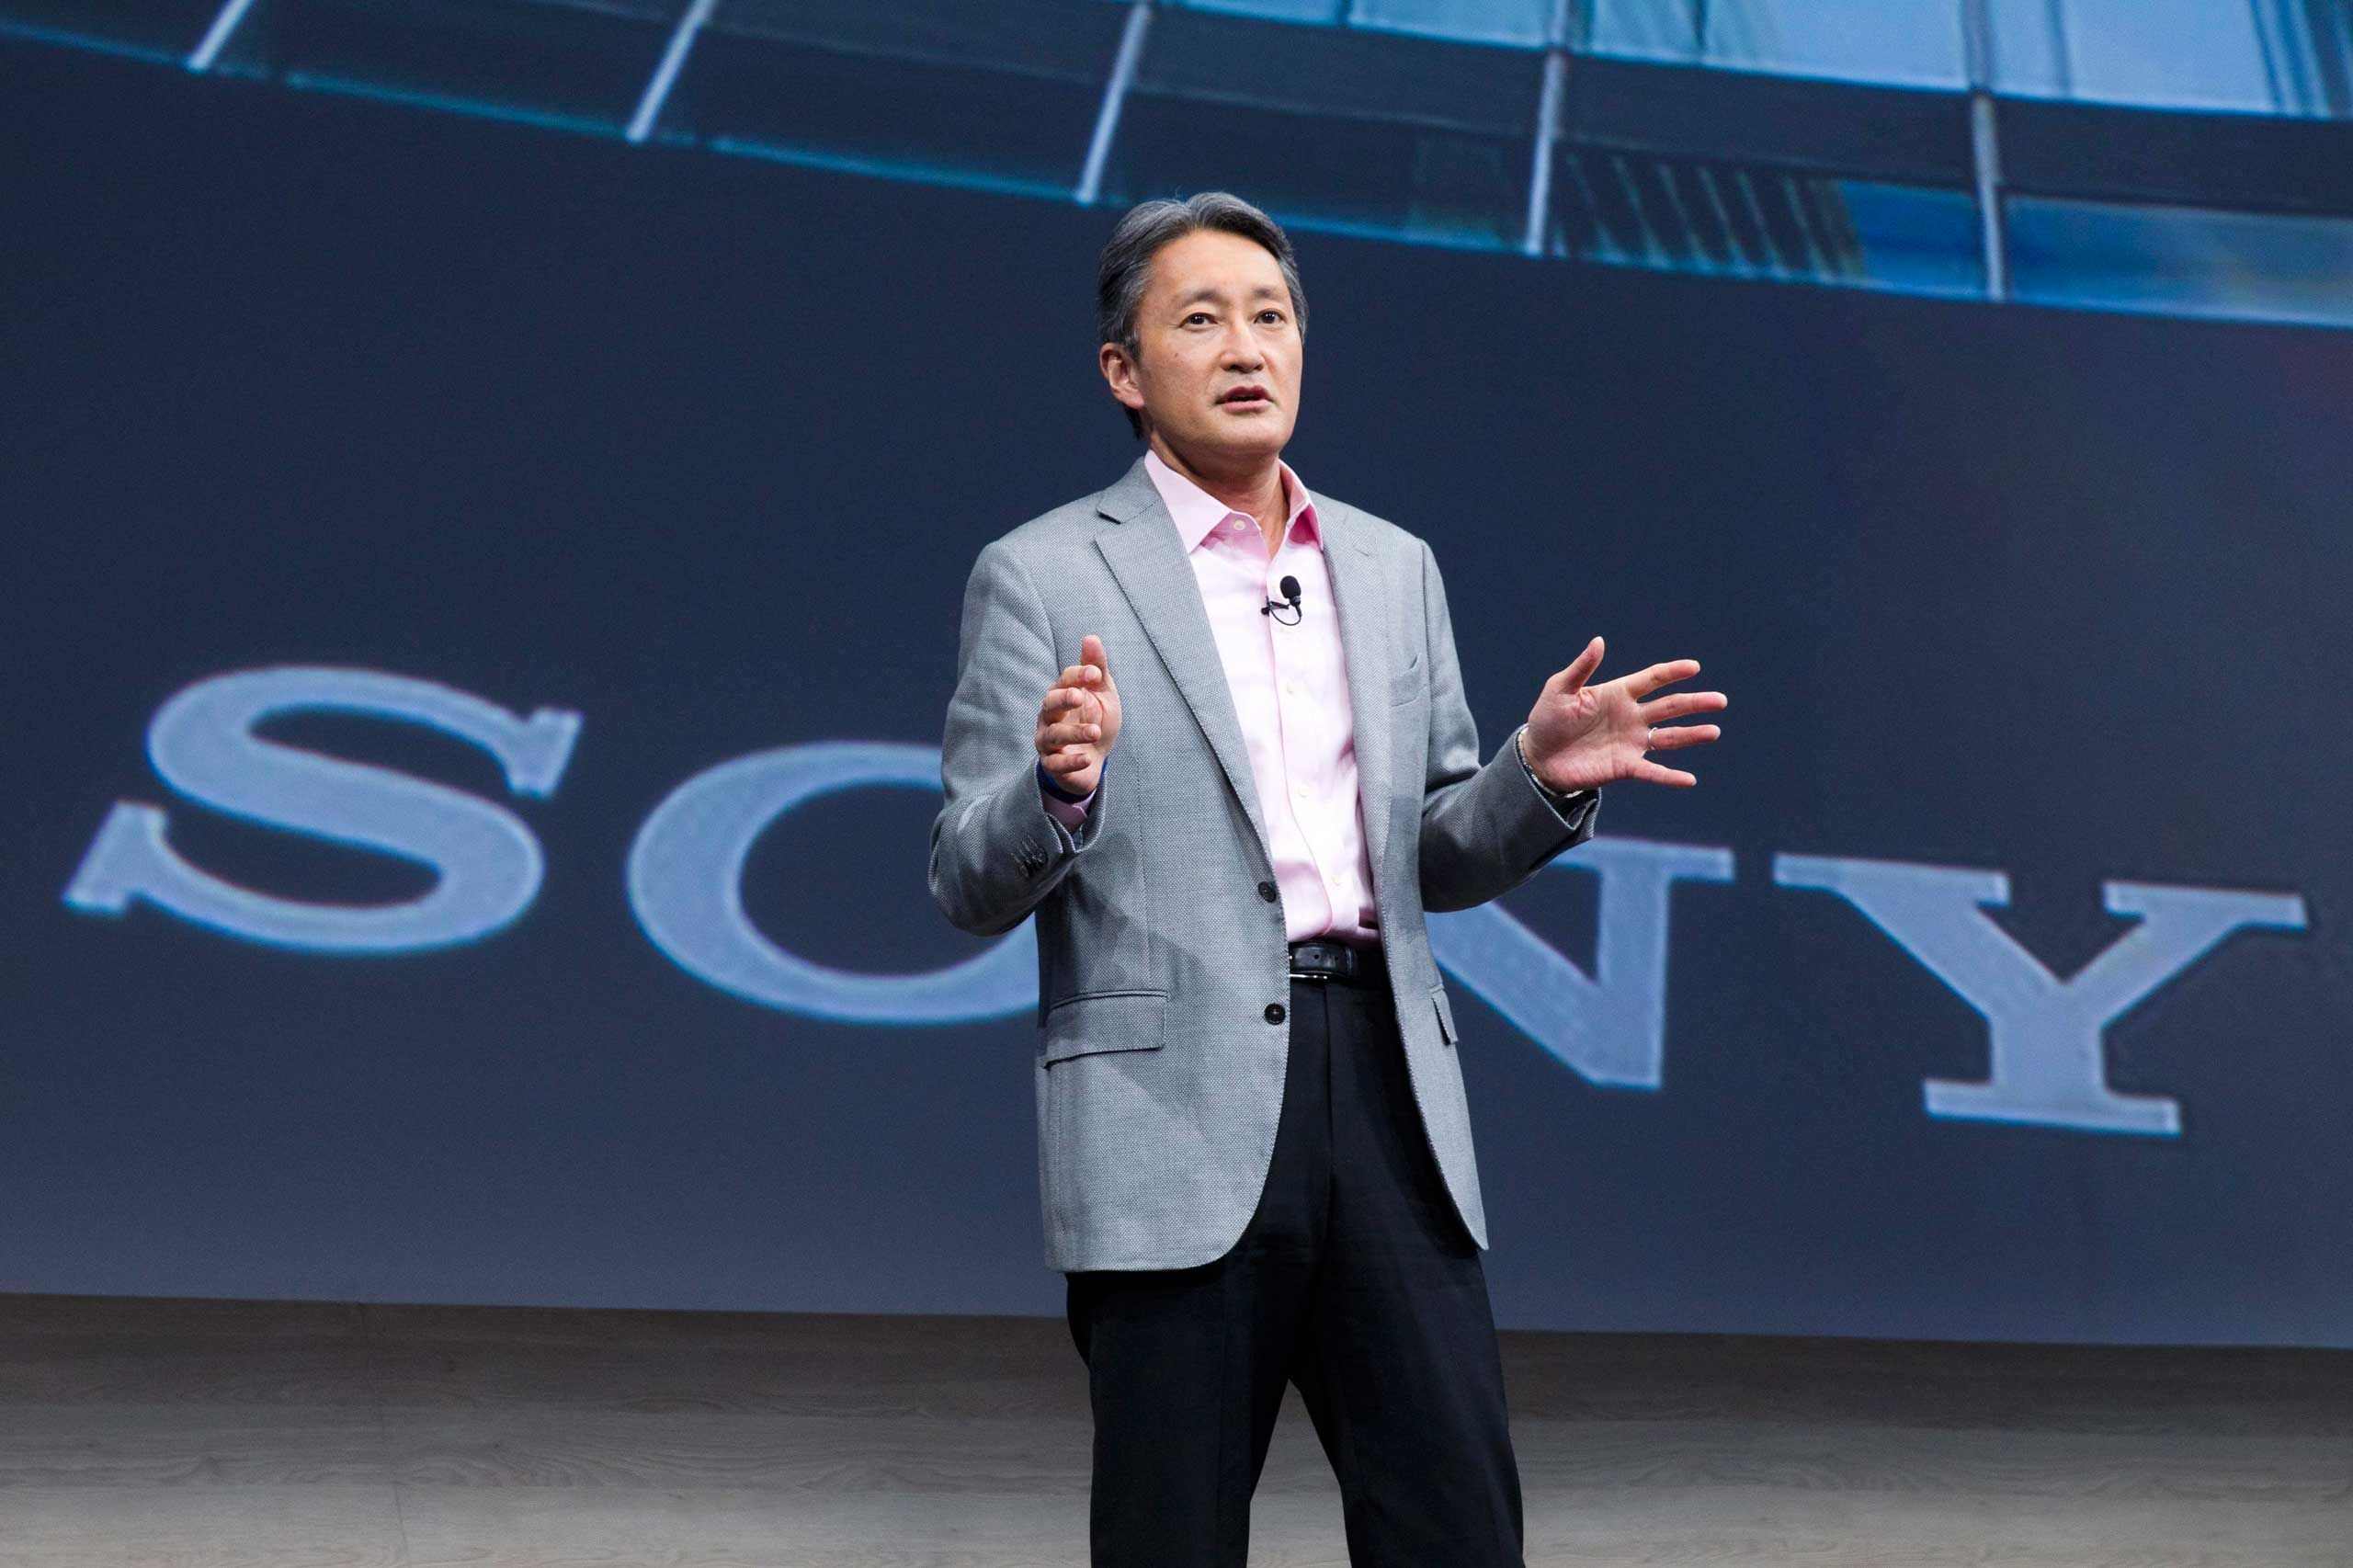 President and CEO of Sony Corporation Kazuo Hirai speaks at a Sony news conference during the 2015 International Consumer Electronics Show (CES) in Las Vegas, Jan. 5, 2015.